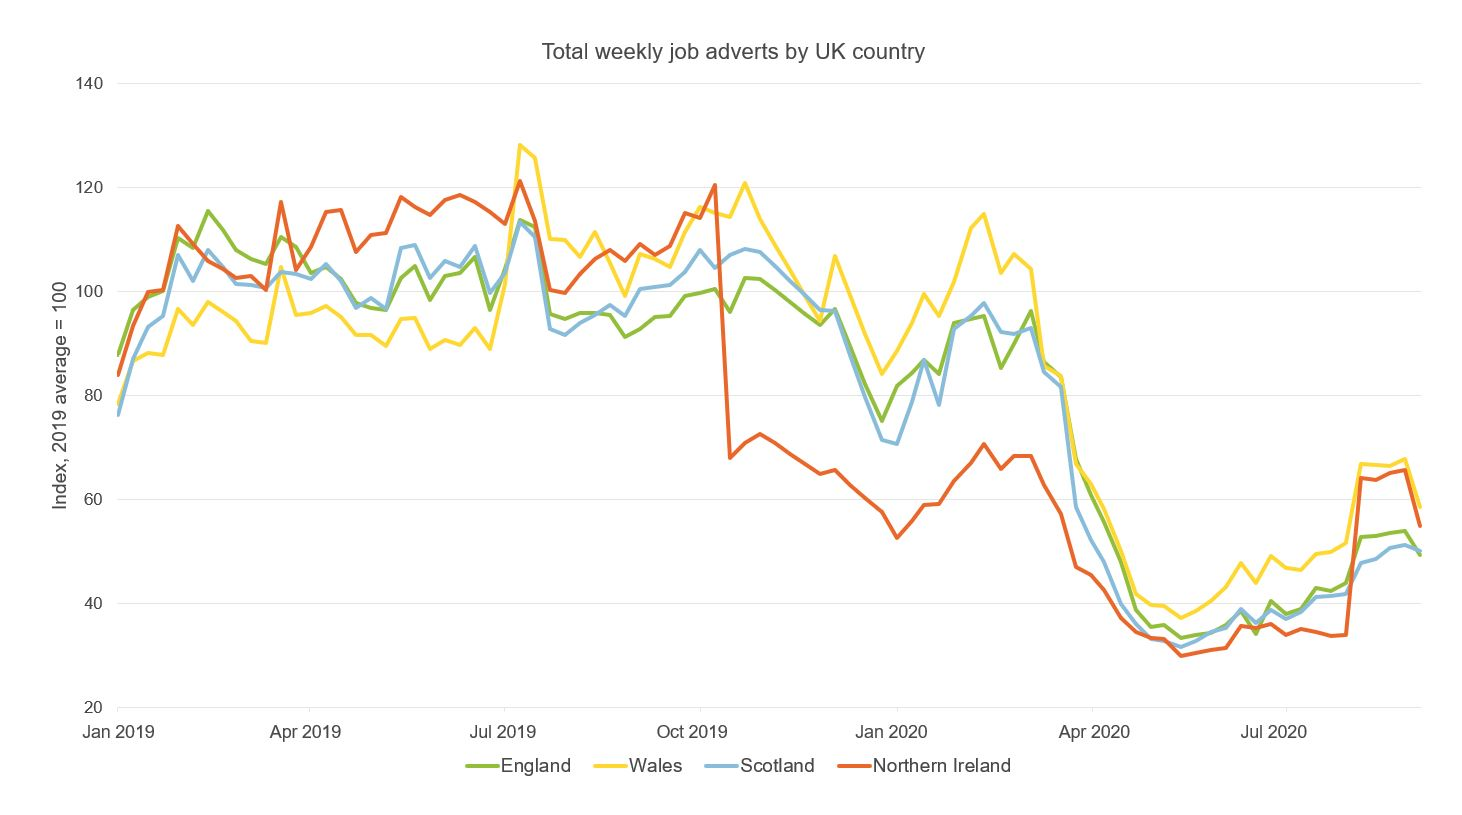 Figure showing total weekly job adverts by UK country